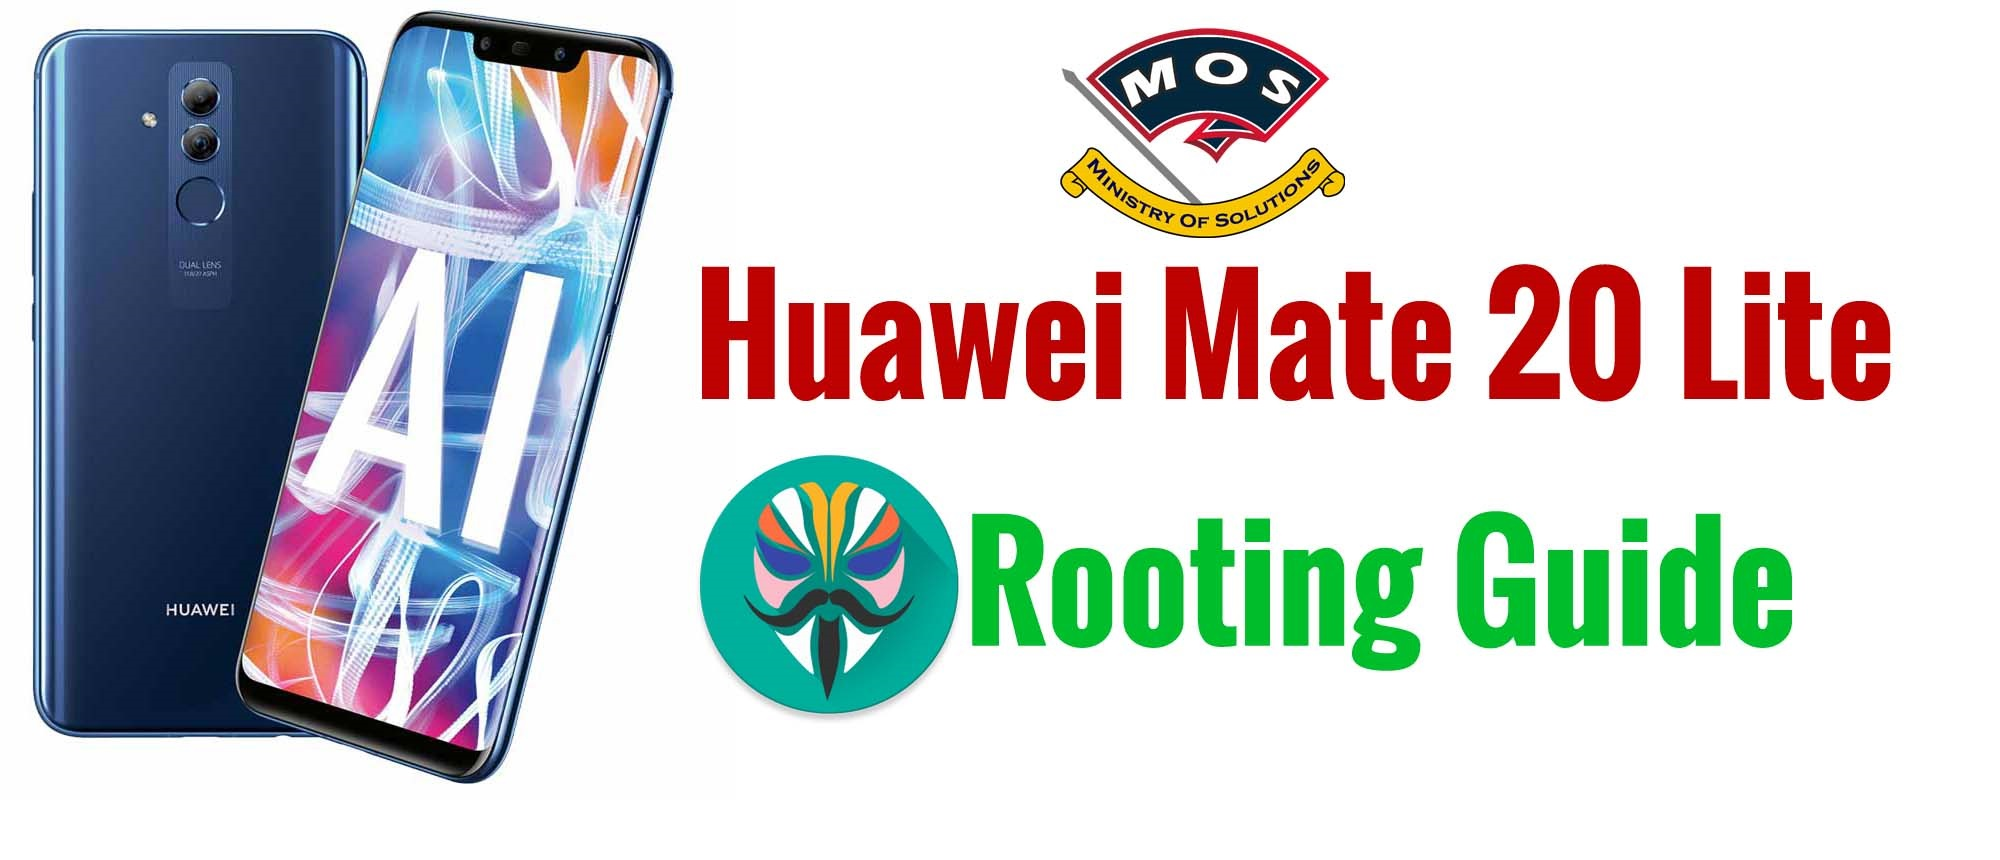 Huawei Mate 20 Lite Rooting Guide - Ministry Of Solutions